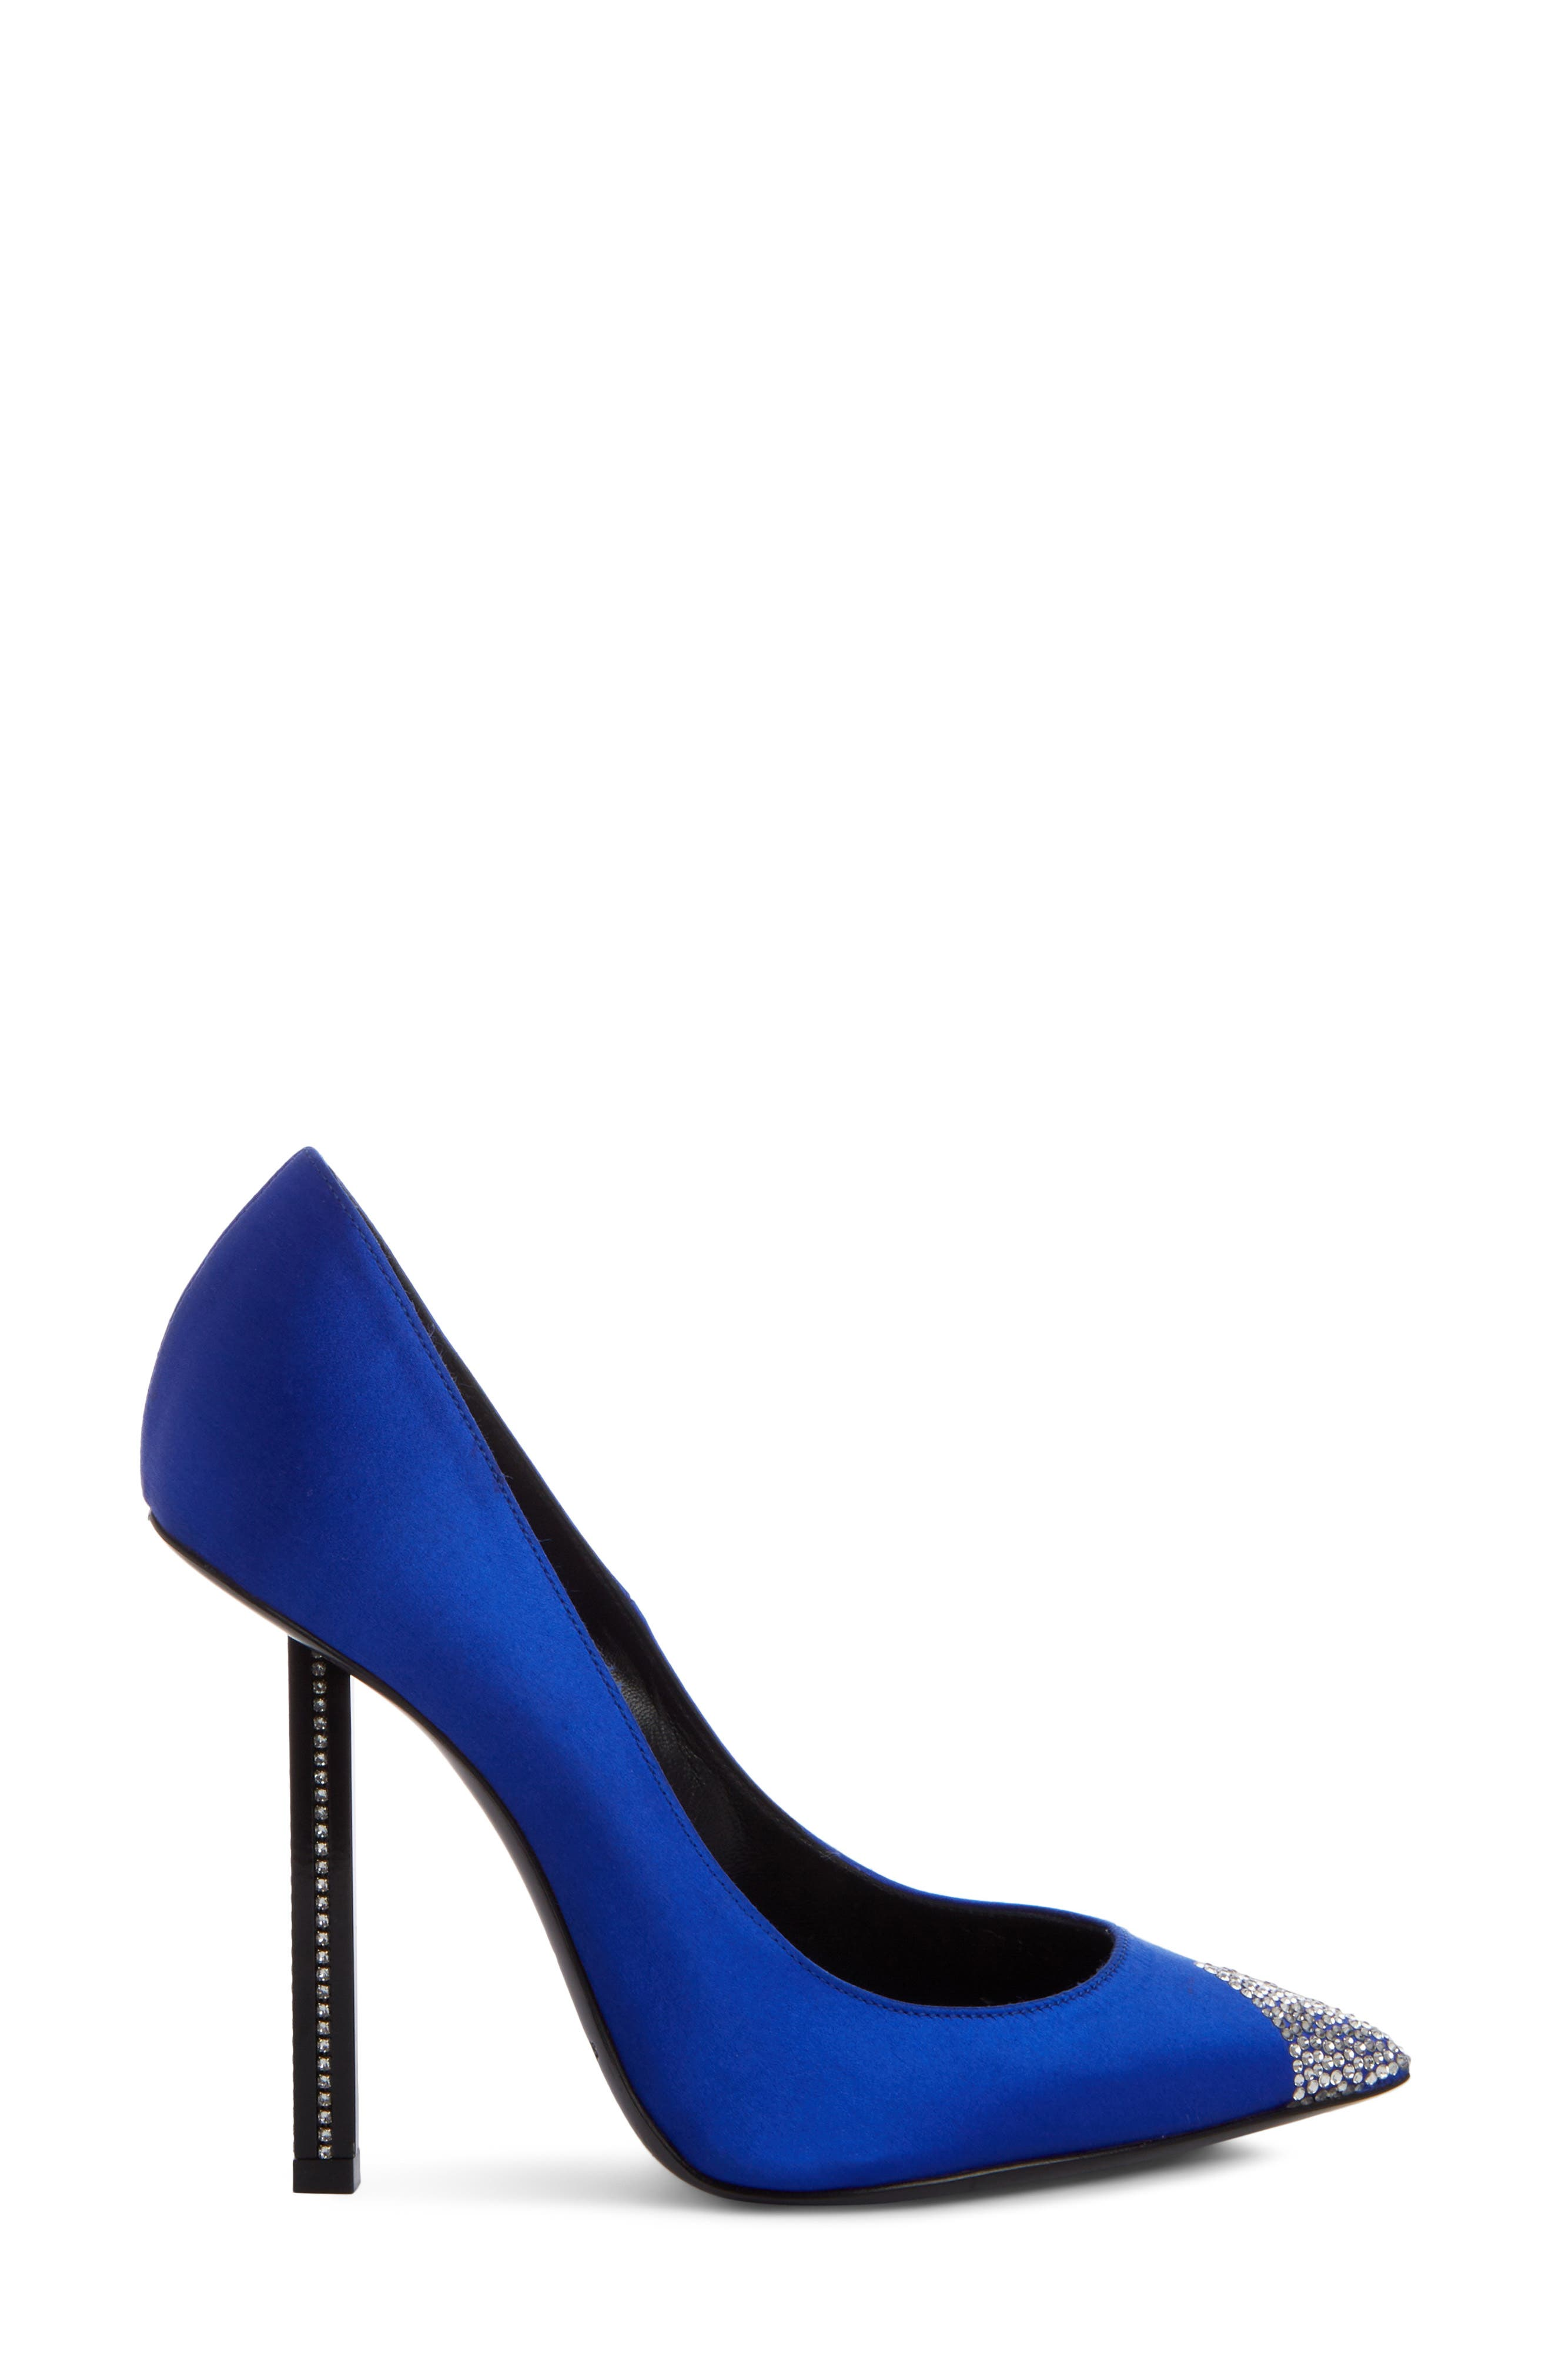 Tower Crystal Pointy Toe Pump,                             Alternate thumbnail 3, color,                             400